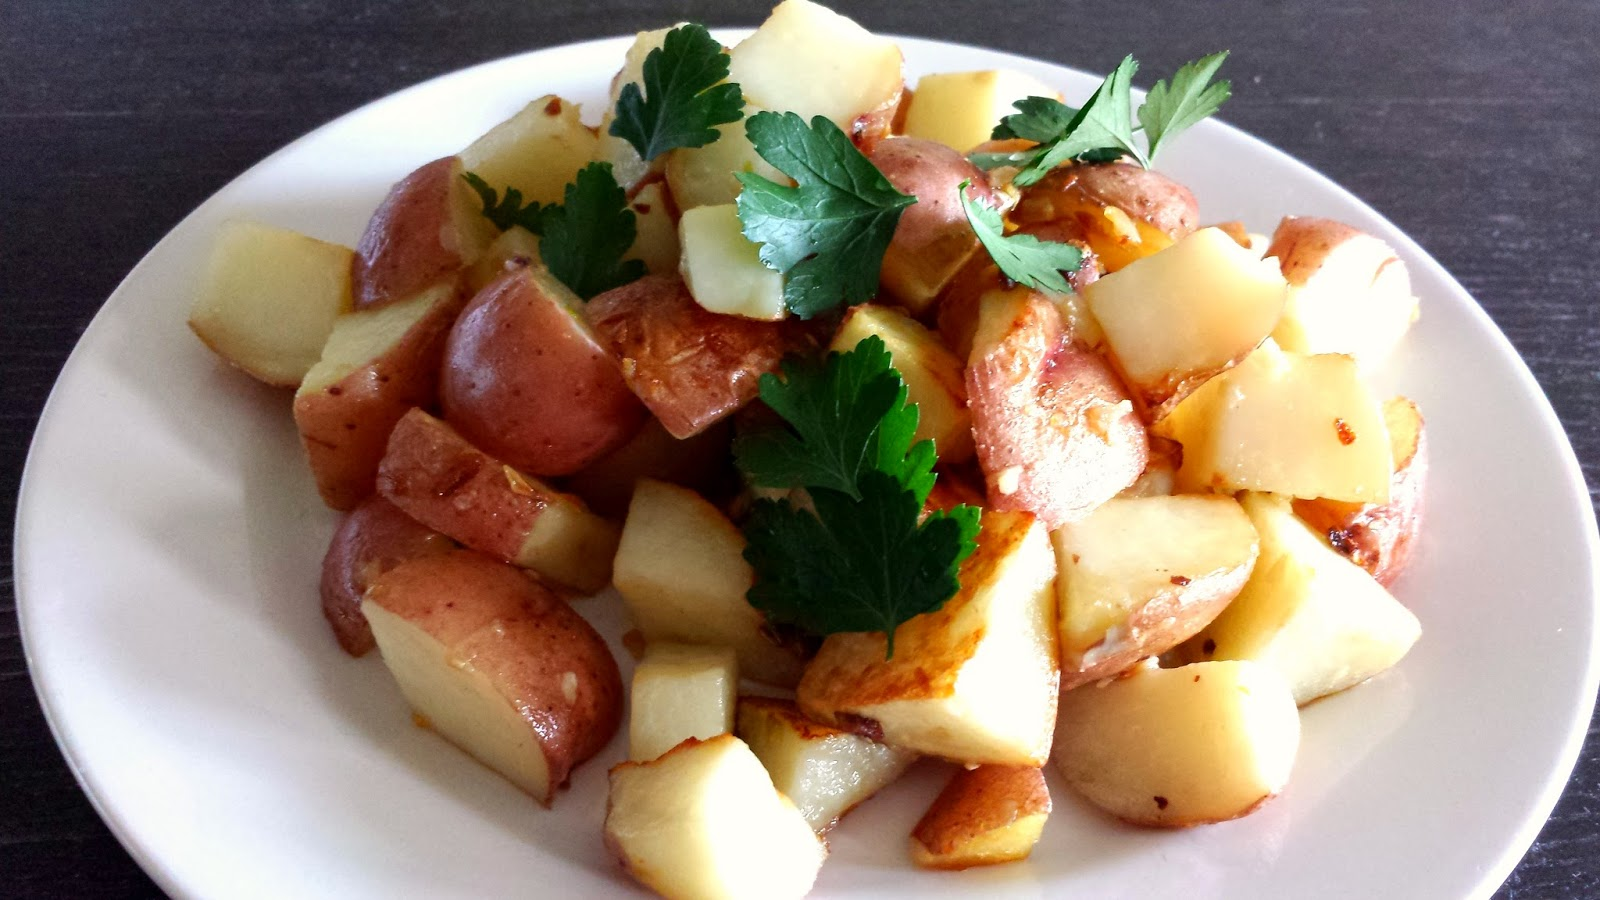 SucreSuKo: Garlic Roasted Potatoes